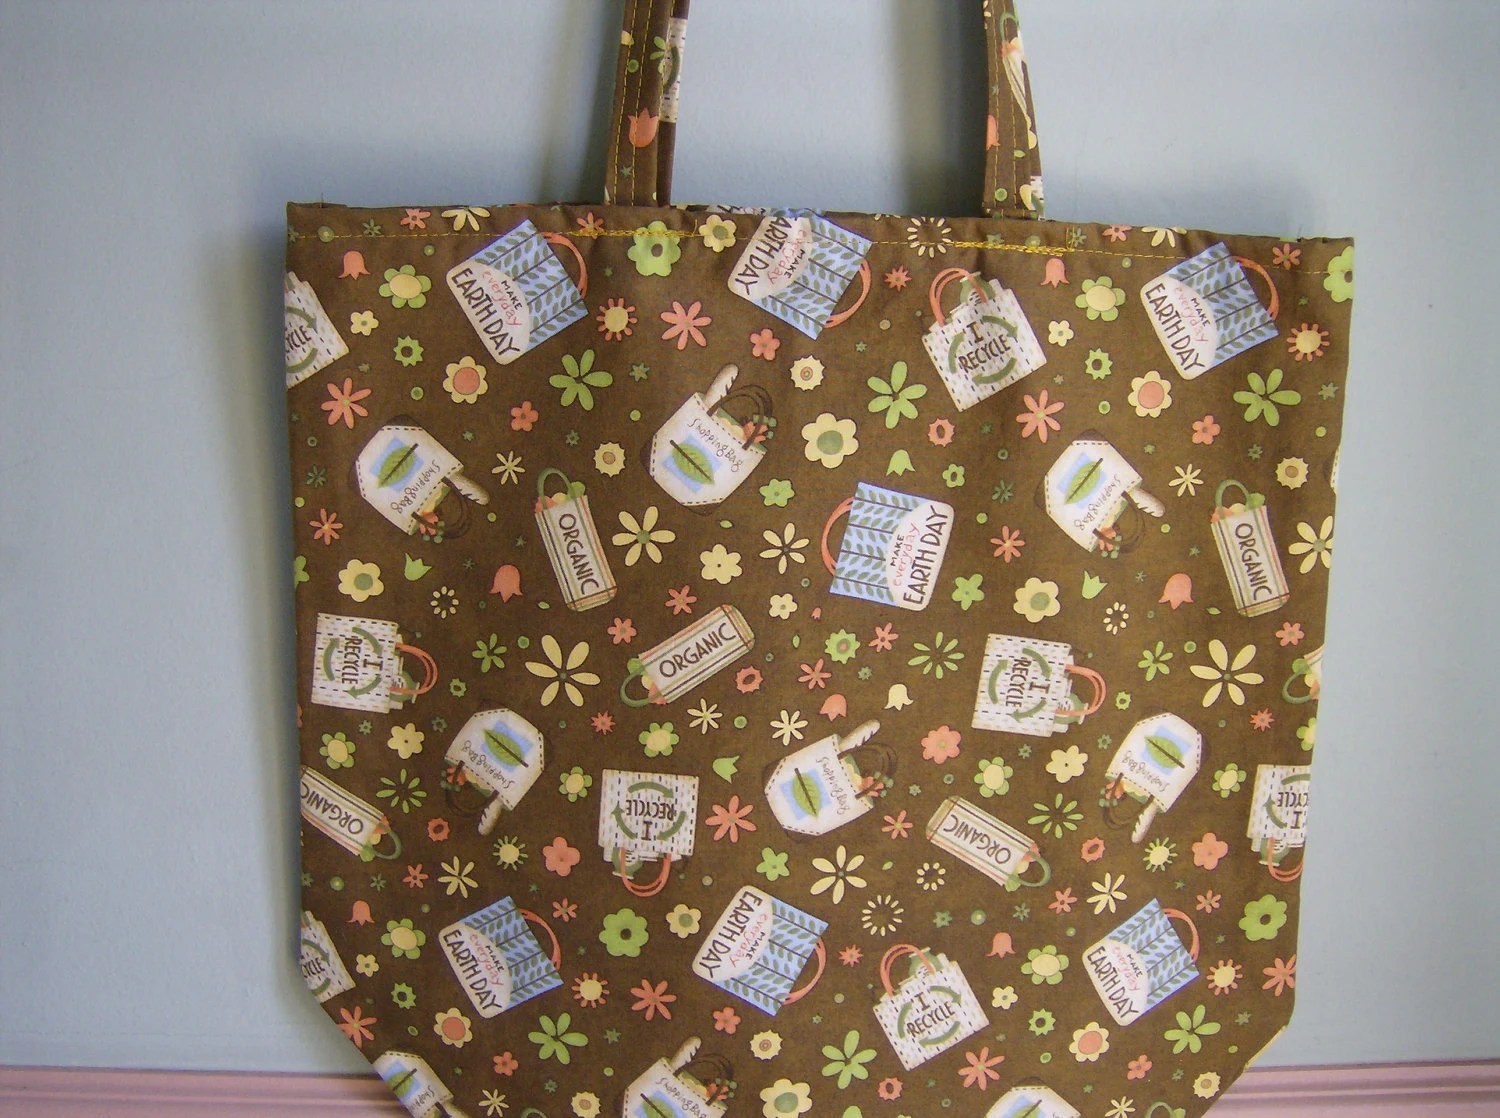 Reusable Market Grocery Shopping Bag, Earth Day Debbie Mumm Fabric, Heavyweight, Nylon Lined